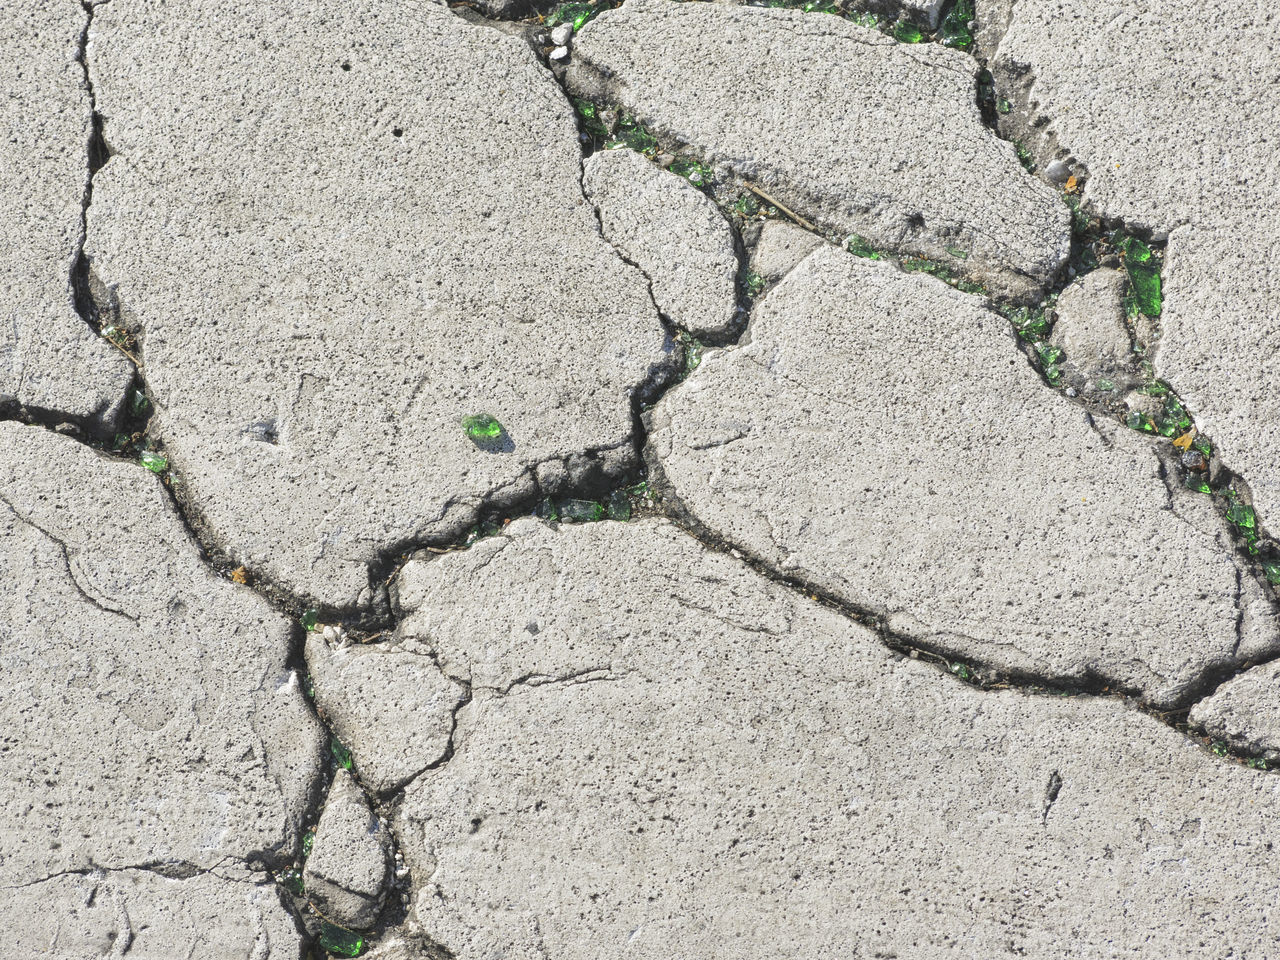 Arid Climate Backgrounds Barren Breaking Close-up Cracked Day Dividing Drought Land Nature No People Outdoors Textured